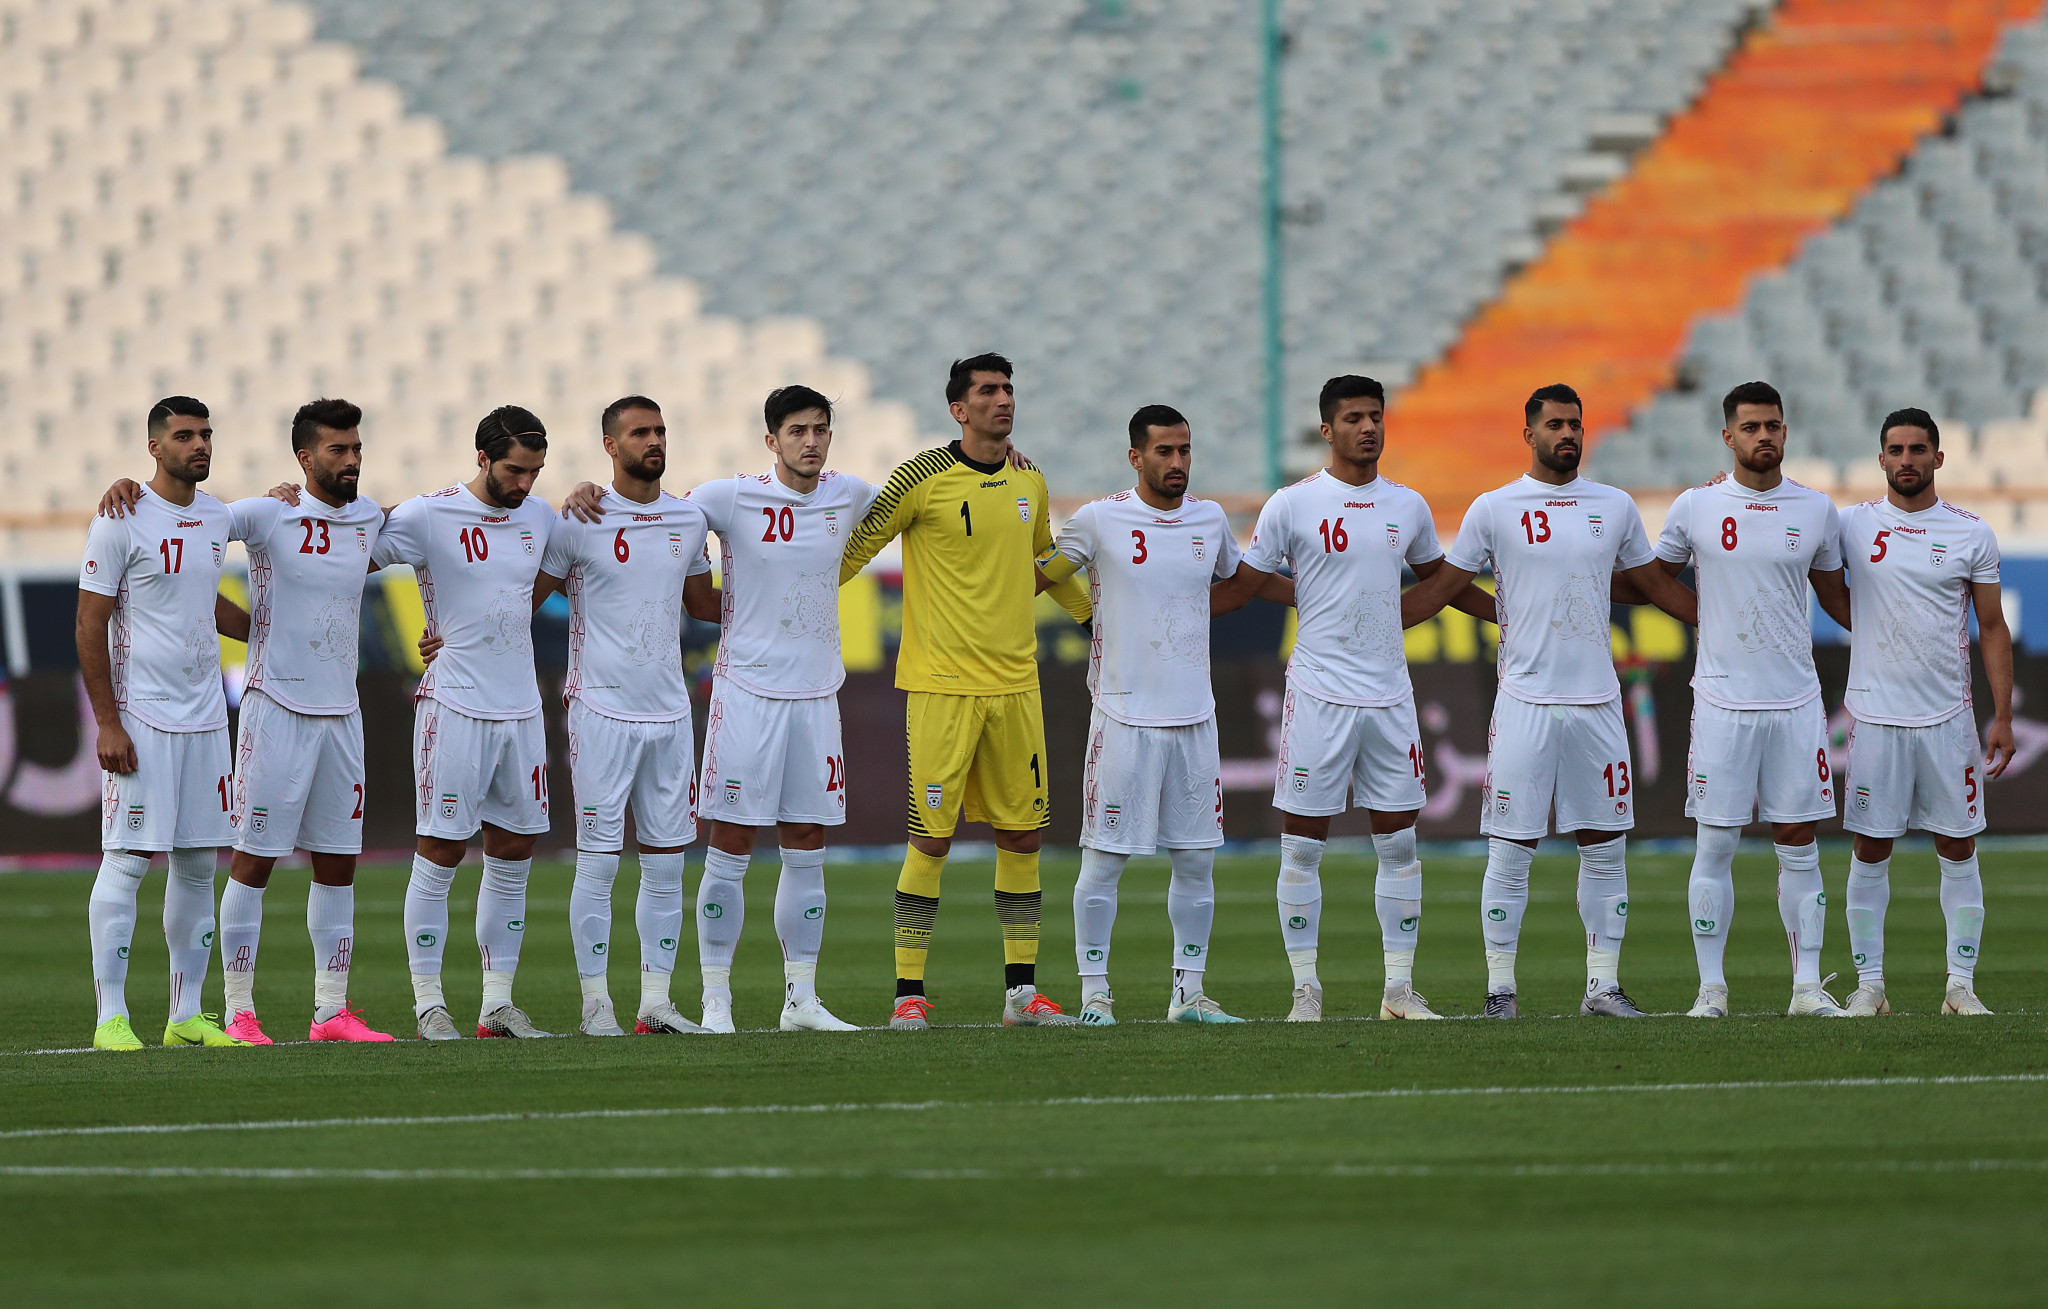 Iran files CAS complaint against AFC for awarding Bahrain World Cup qualifiers